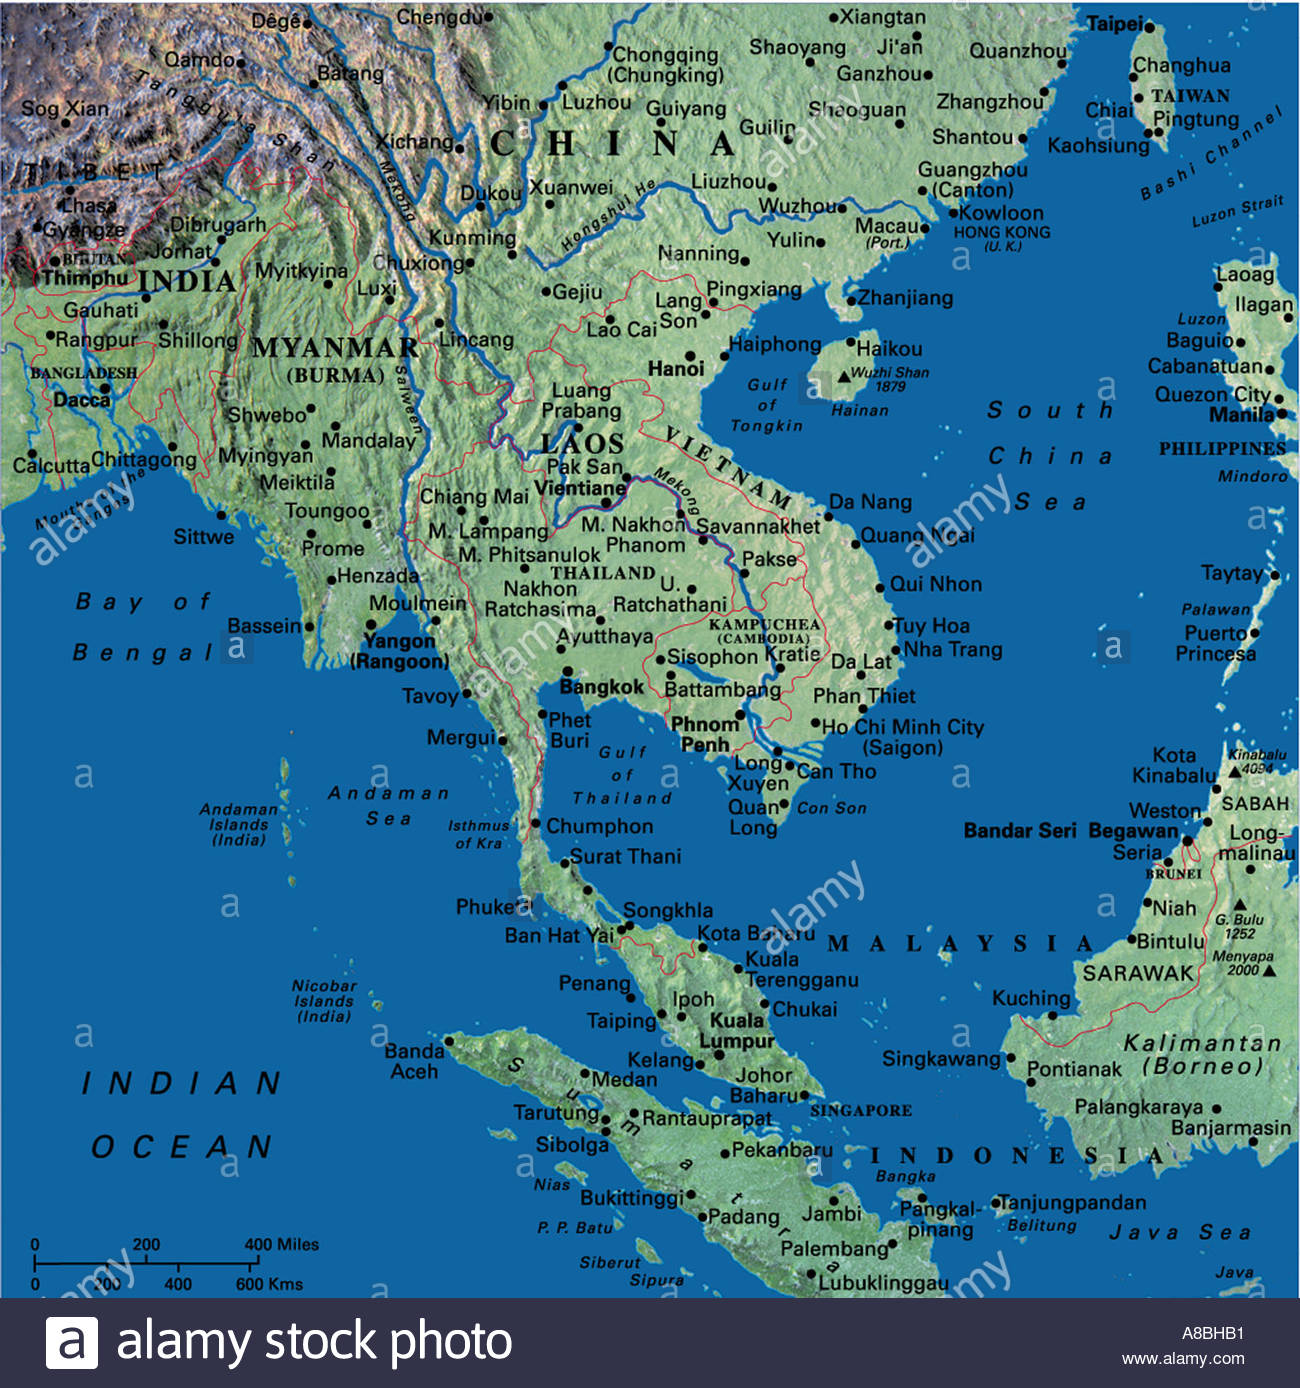 Map maps asia thailand indonesia stock photo 3933616 alamy map maps asia thailand indonesia gumiabroncs Gallery